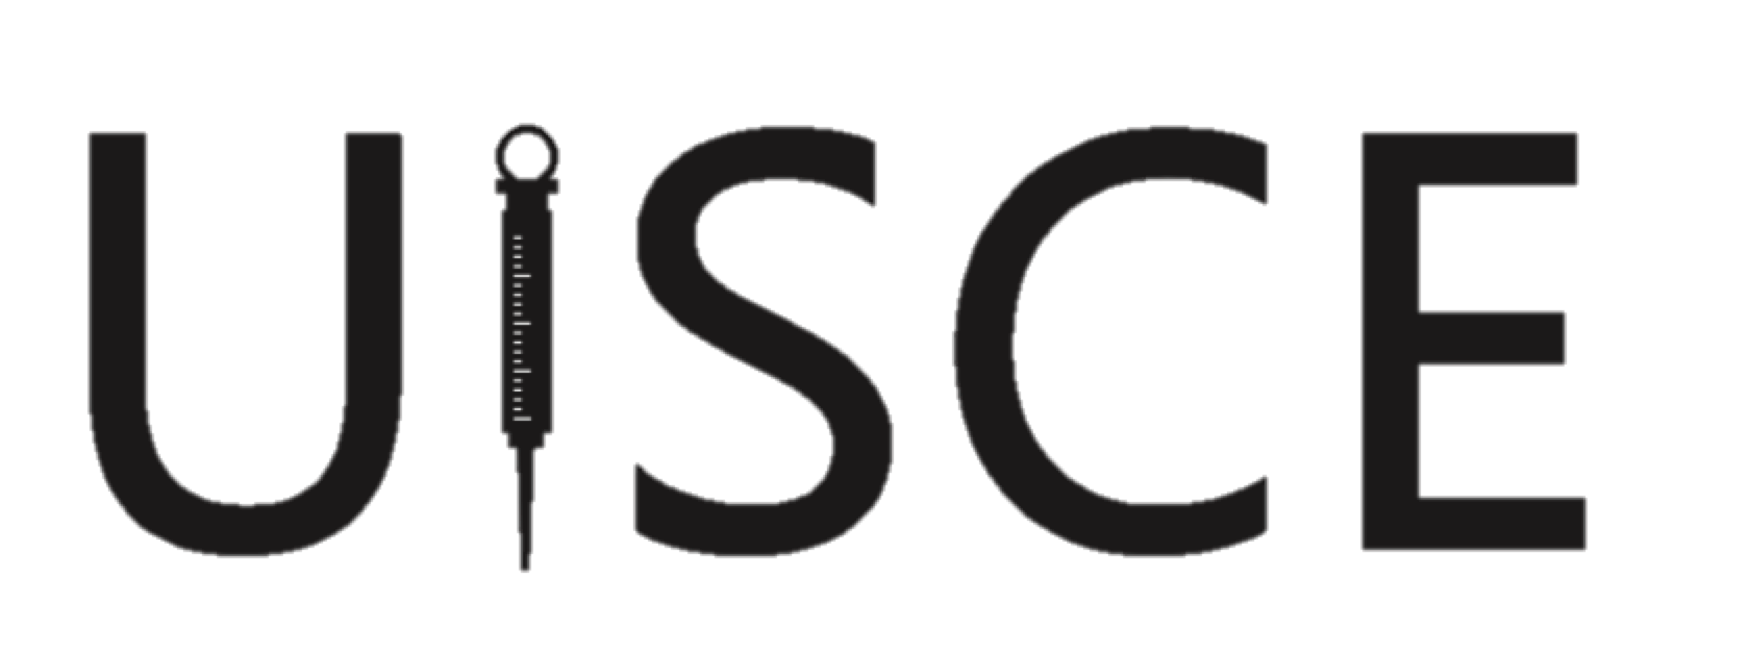 UISCE (only letters).png